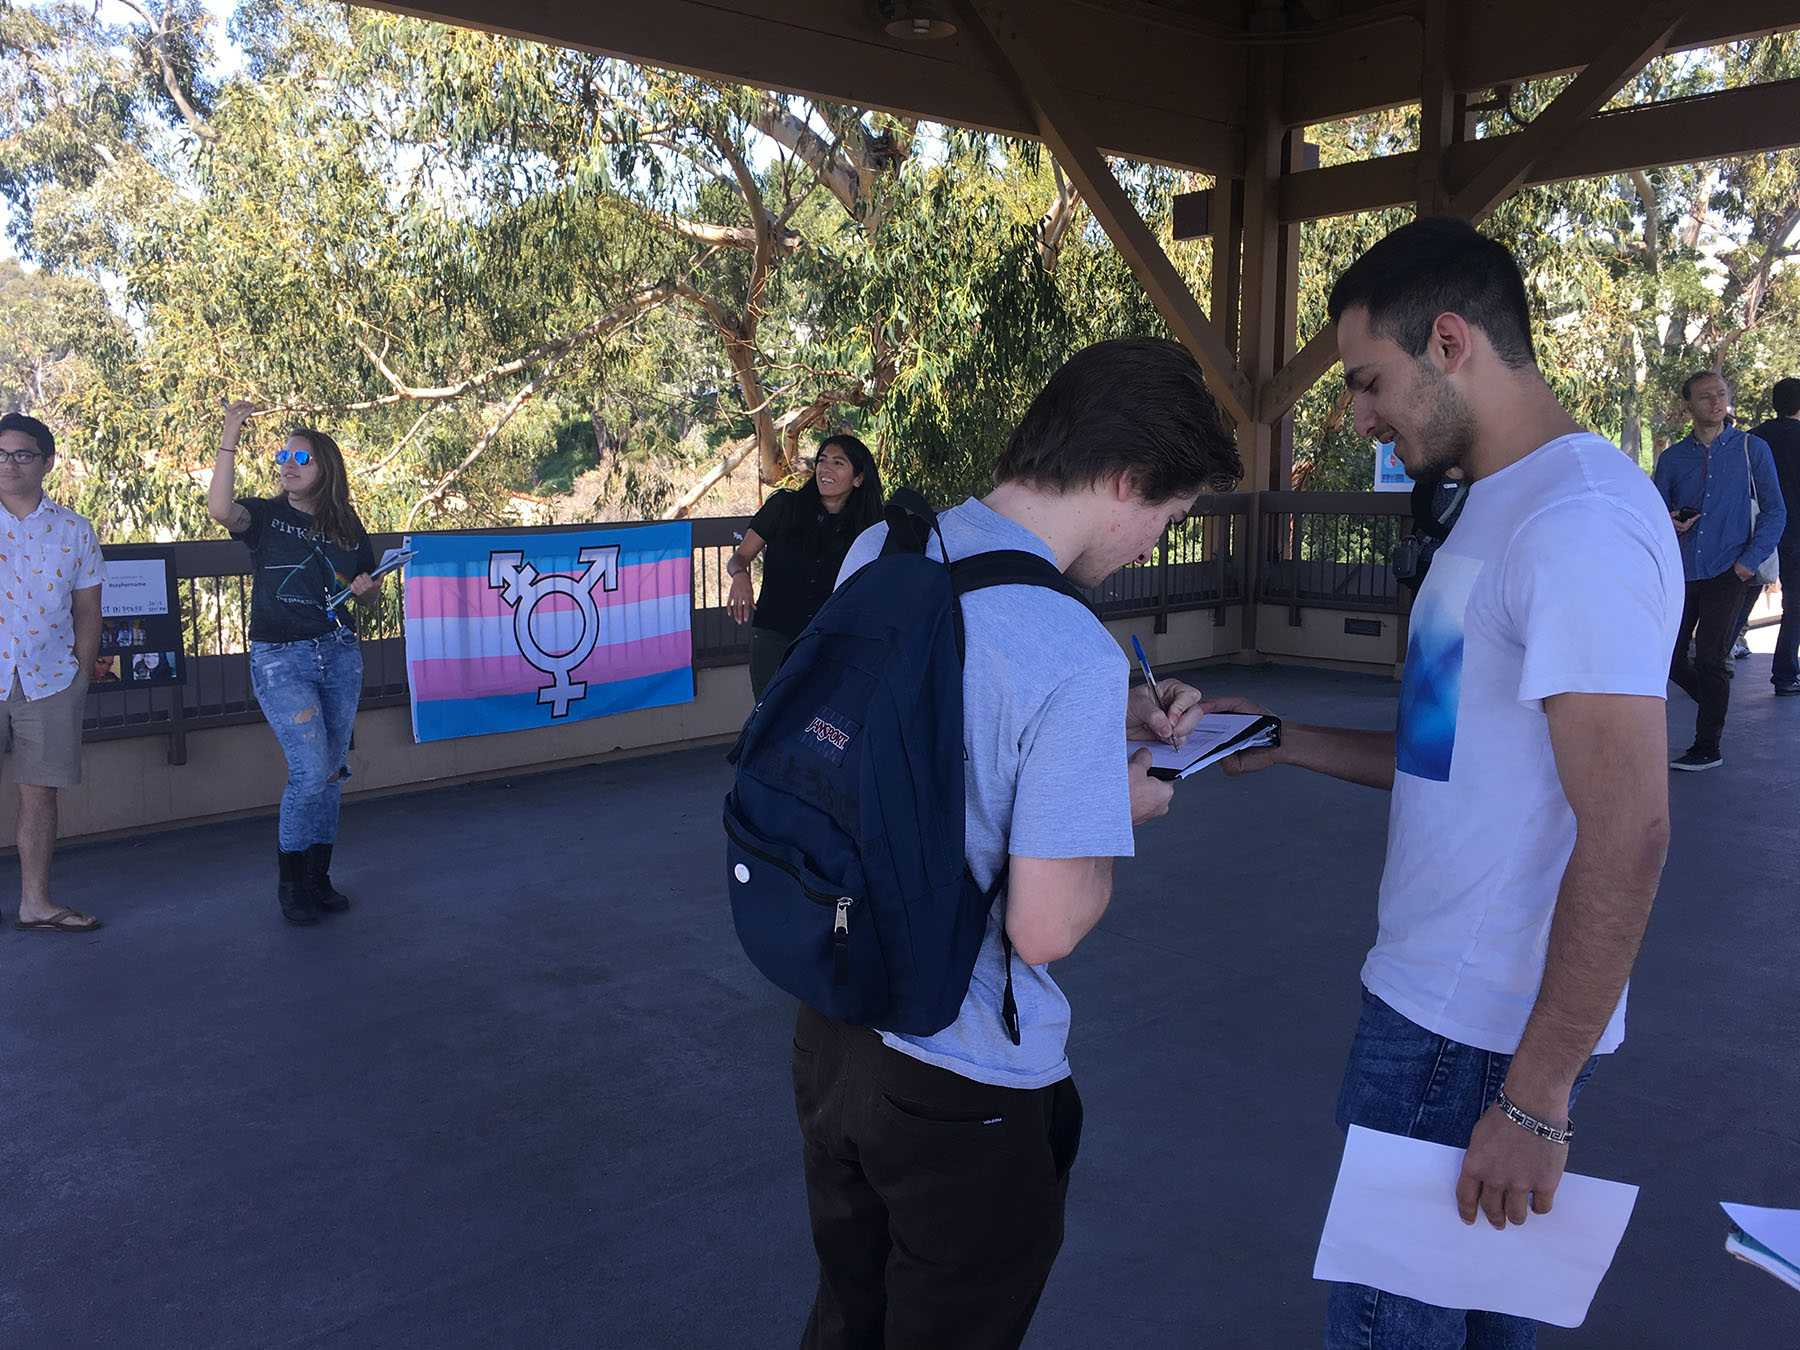 City College Student Thomas Crane signs a petition supporting gender neutral bathrooms on campus from David Panbehchi, commissioner of events for the Student Government, on Thursday, March, 16, on the bridge between East and West campus. The rally spread awareness and promoted gender inclusivity.